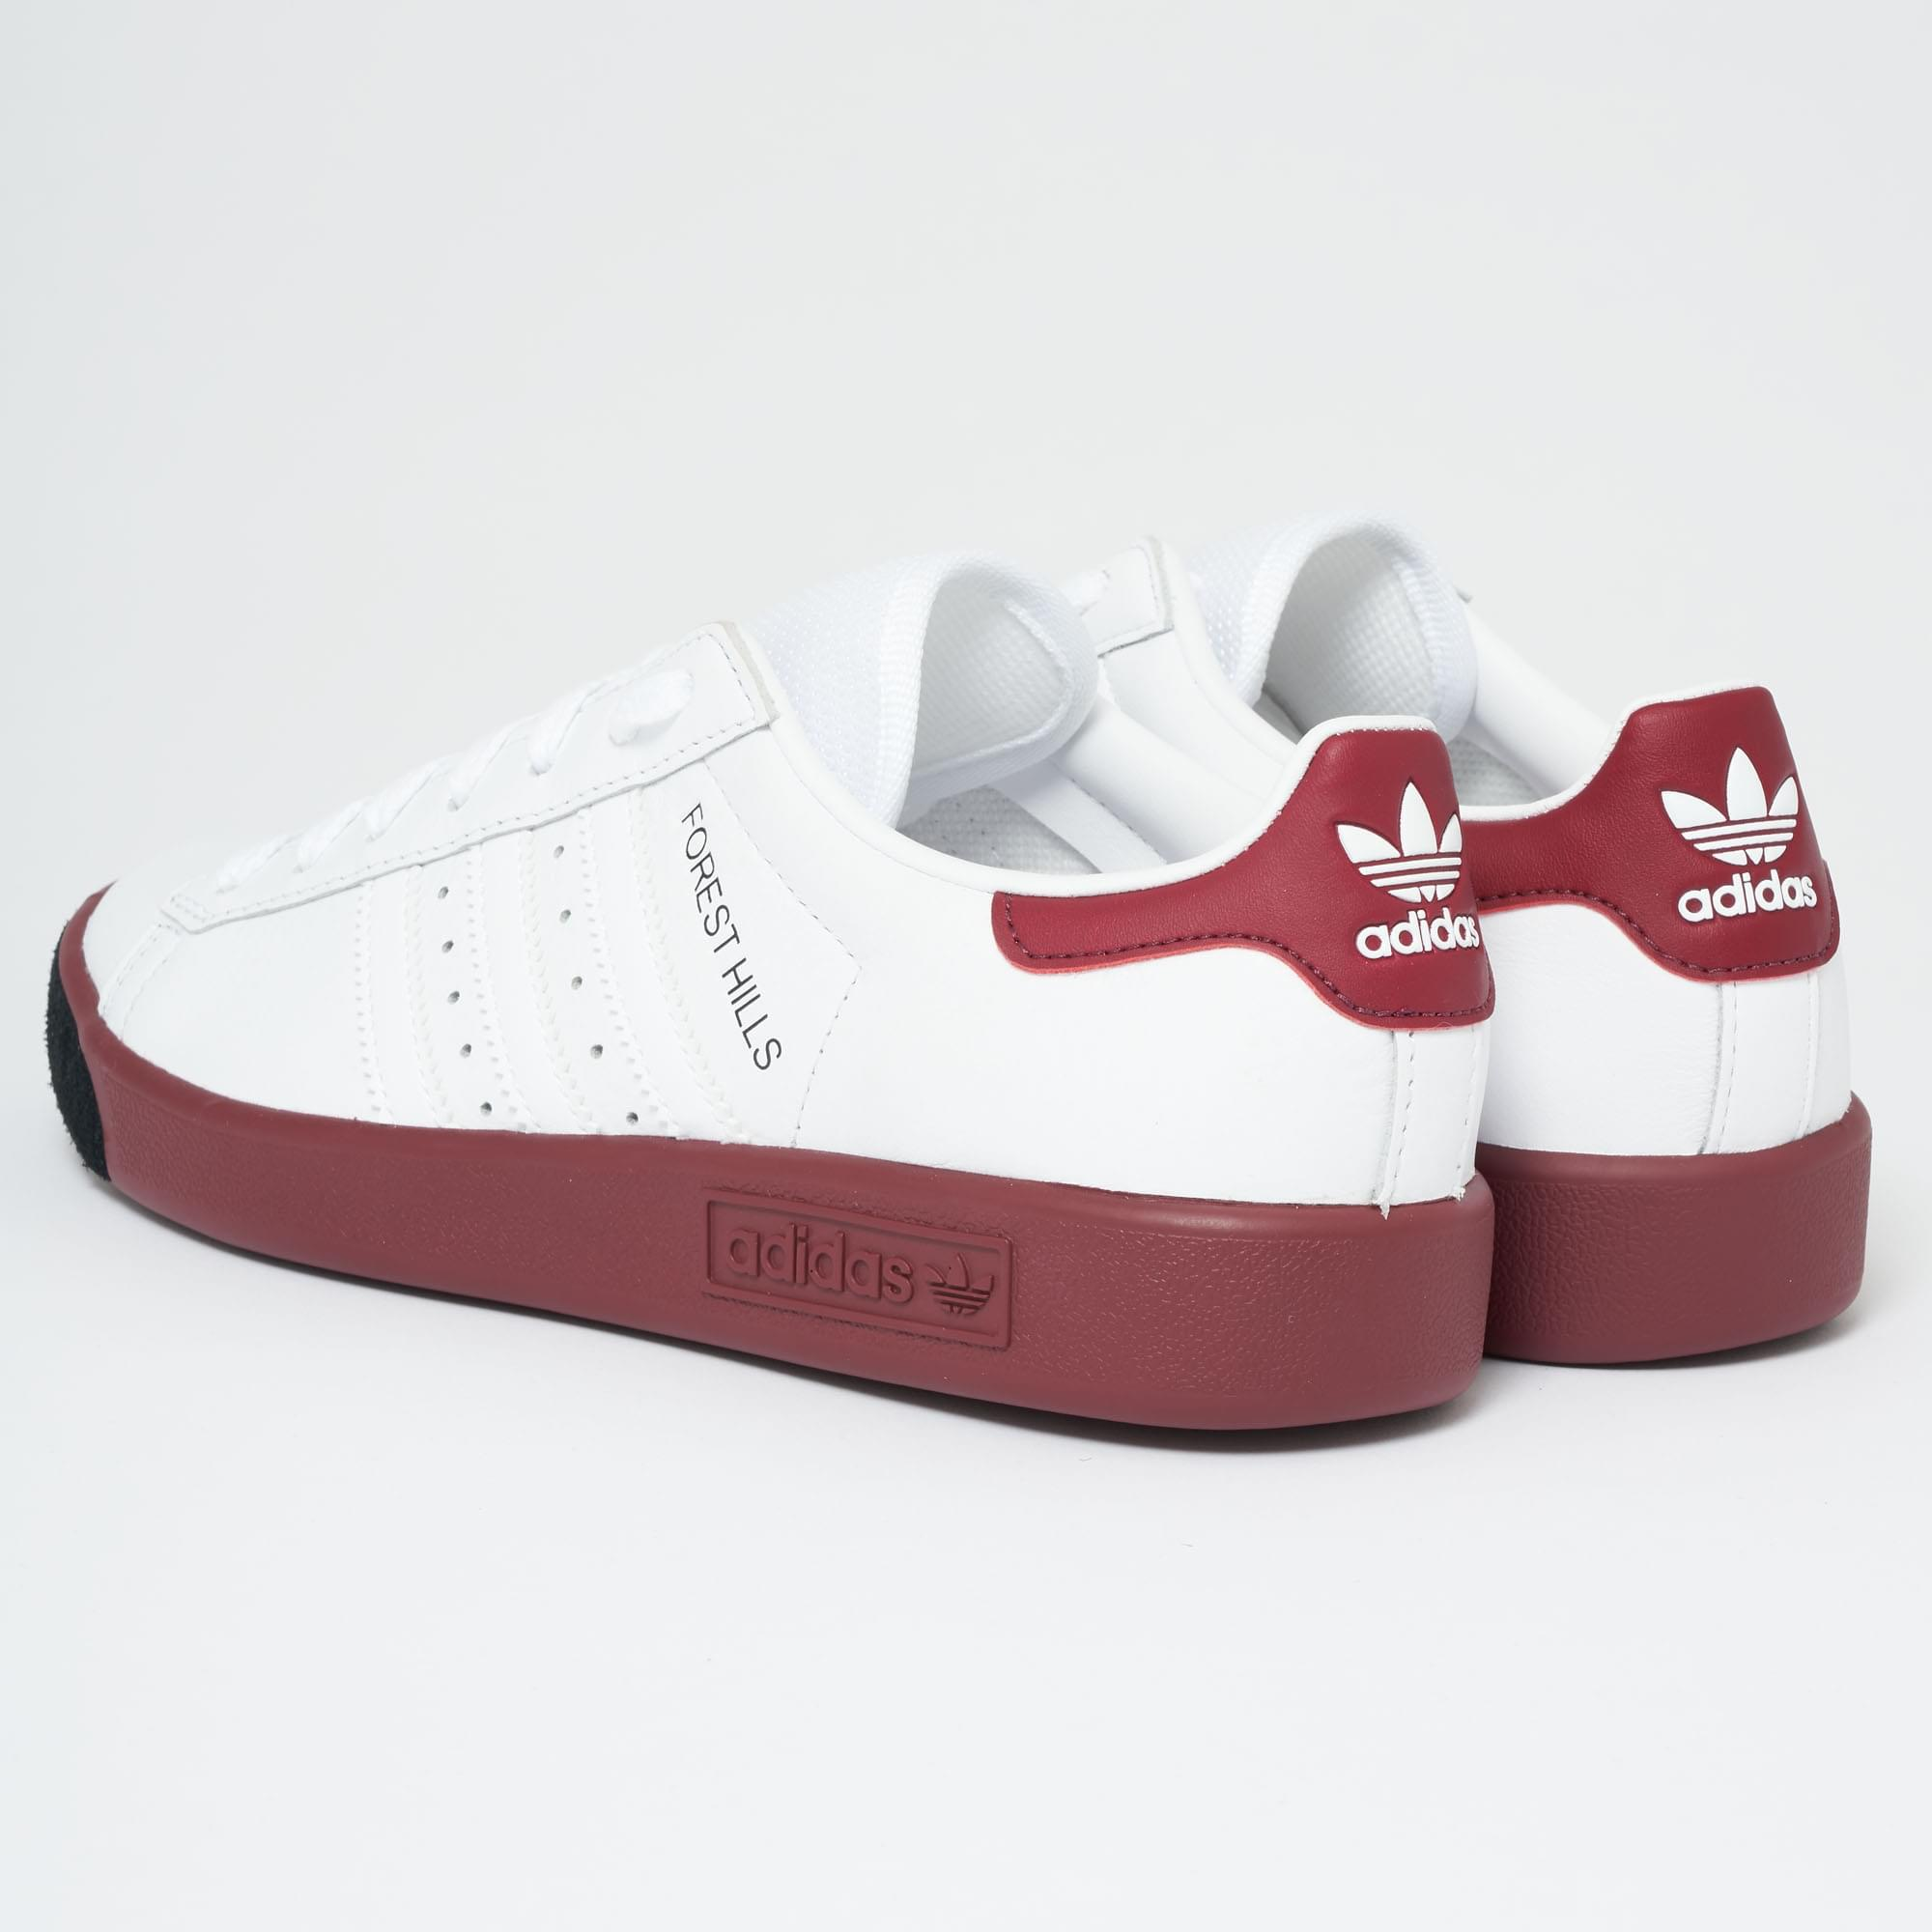 adidas forest hills white red